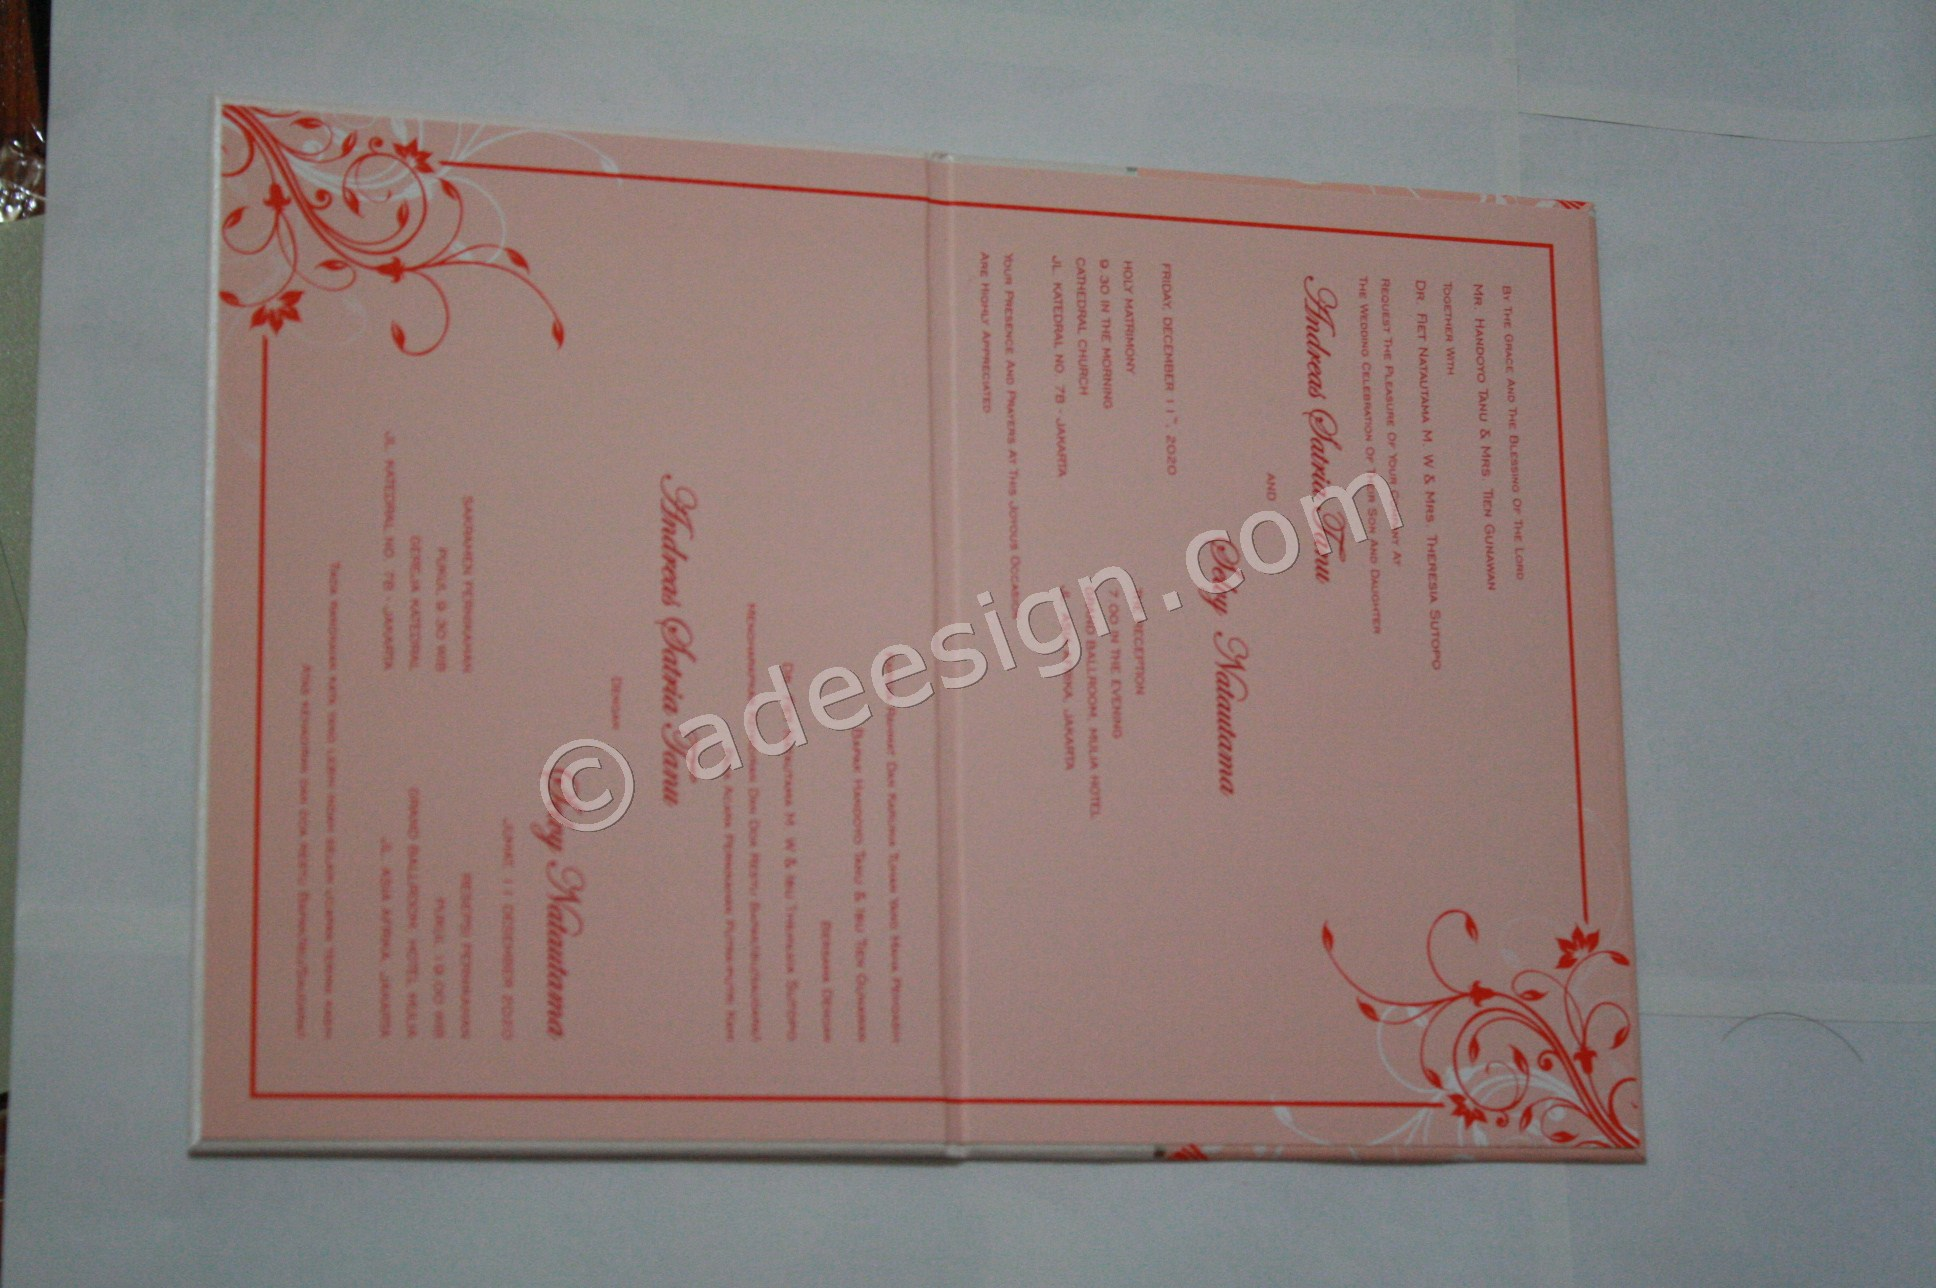 Undangan Pernikahan Hardcover ED63 3 - Pesan Wedding Invitations Simple di Ploso